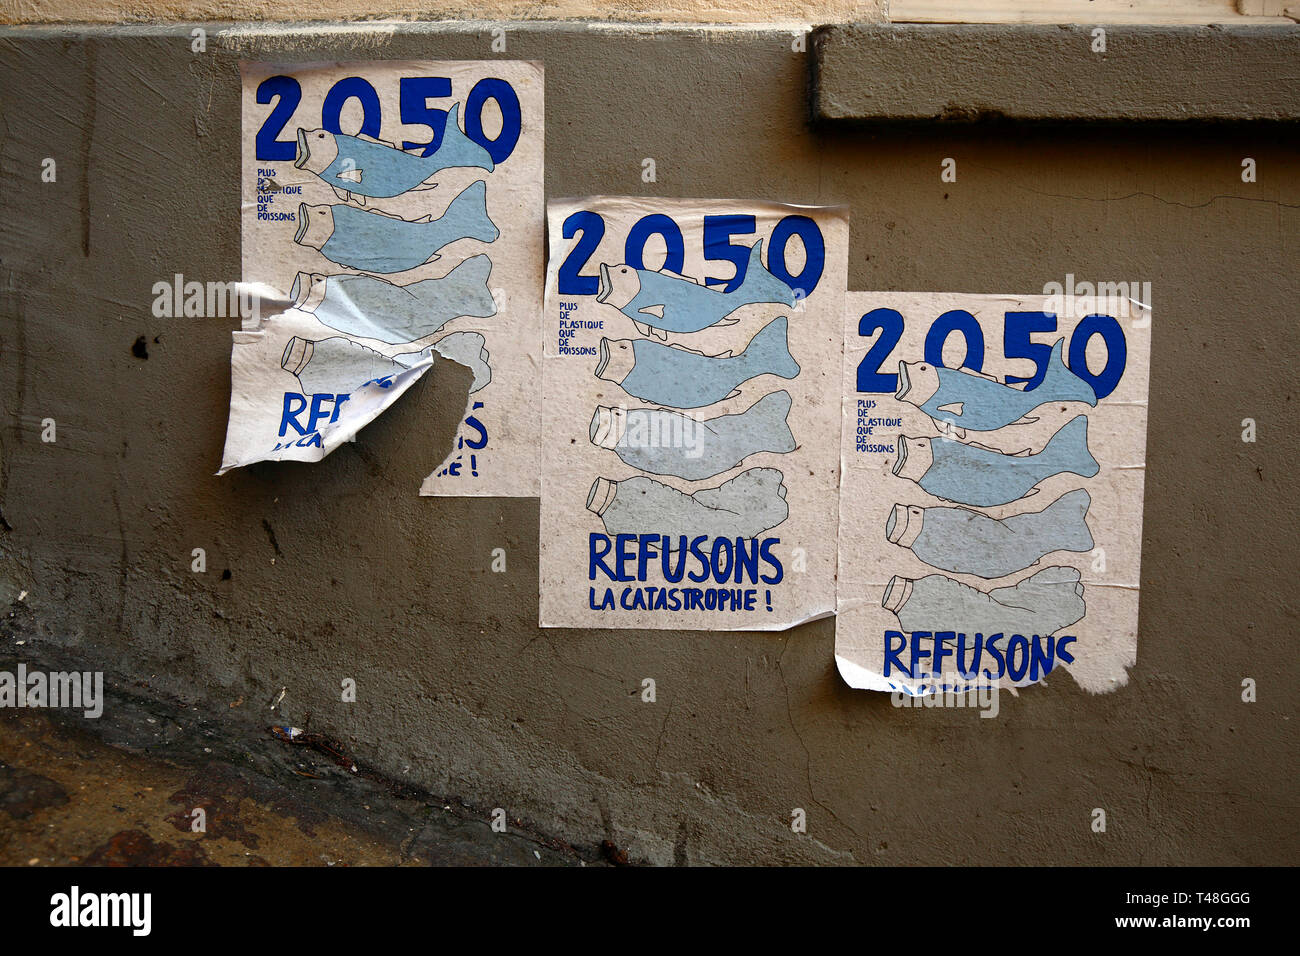 Flyers on a wall in Paris warning of an impending ocean plastic pollution crisis - Stock Image